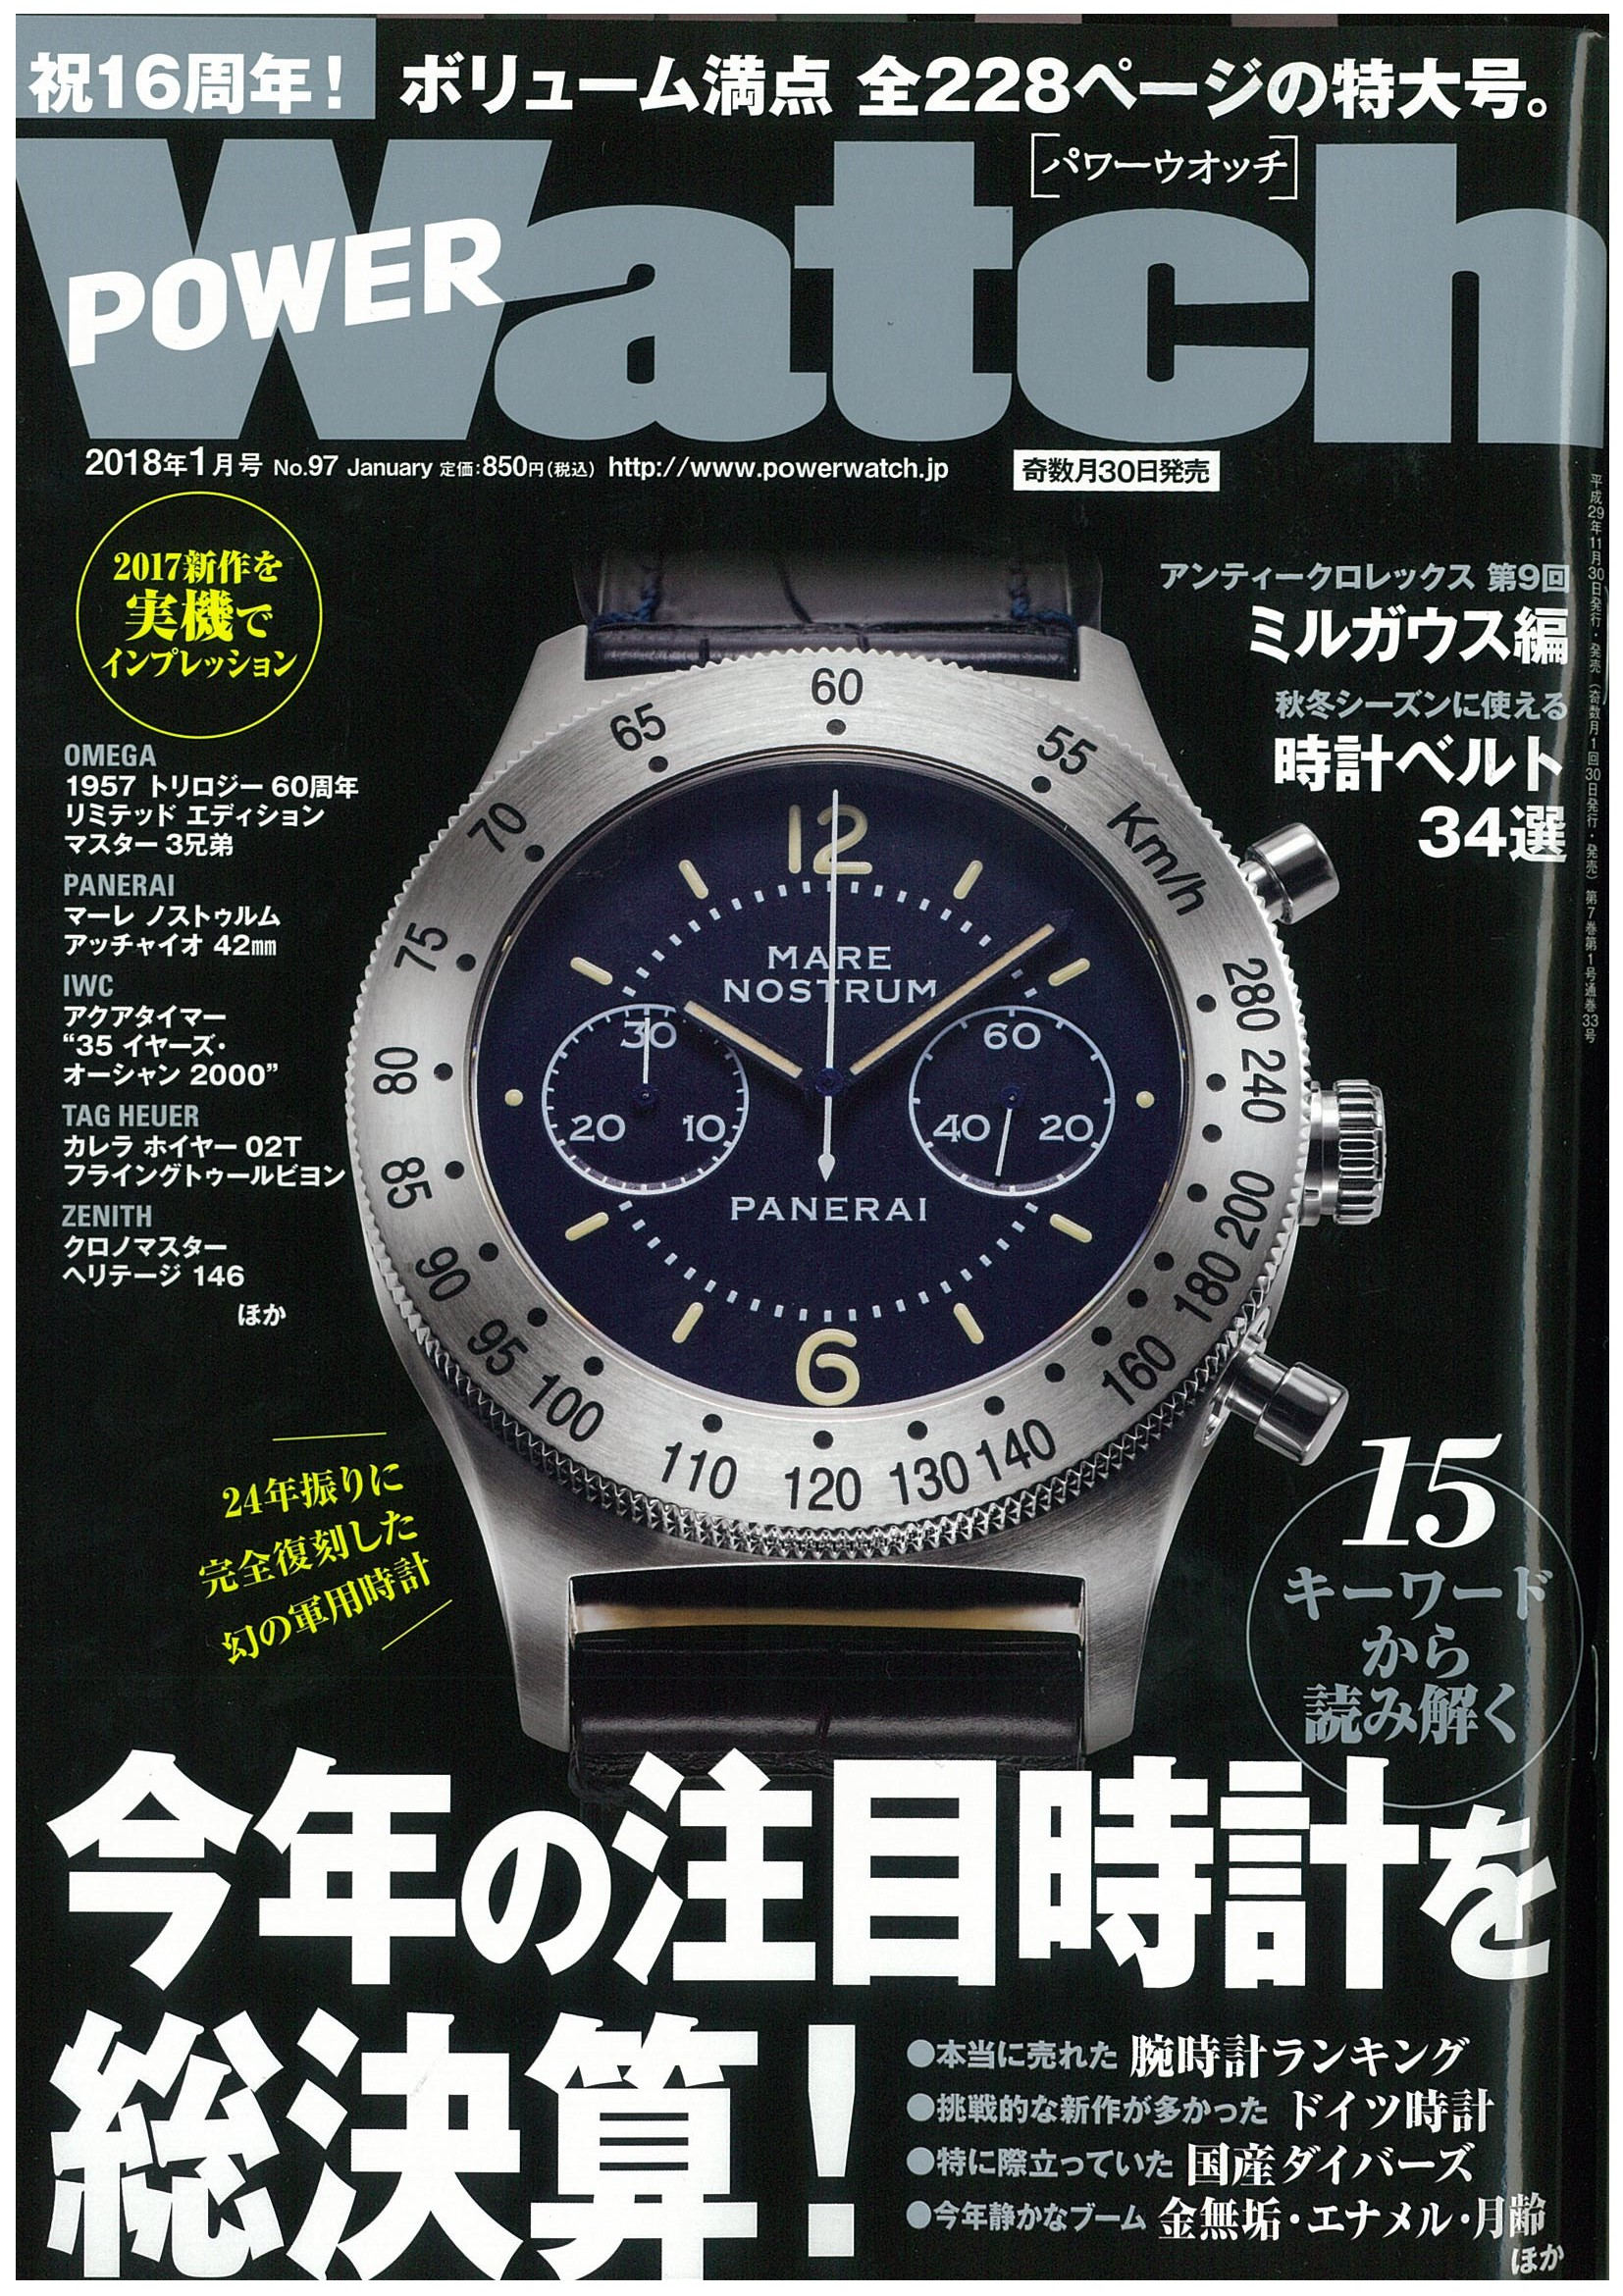 11.30_POWER Watch_CV